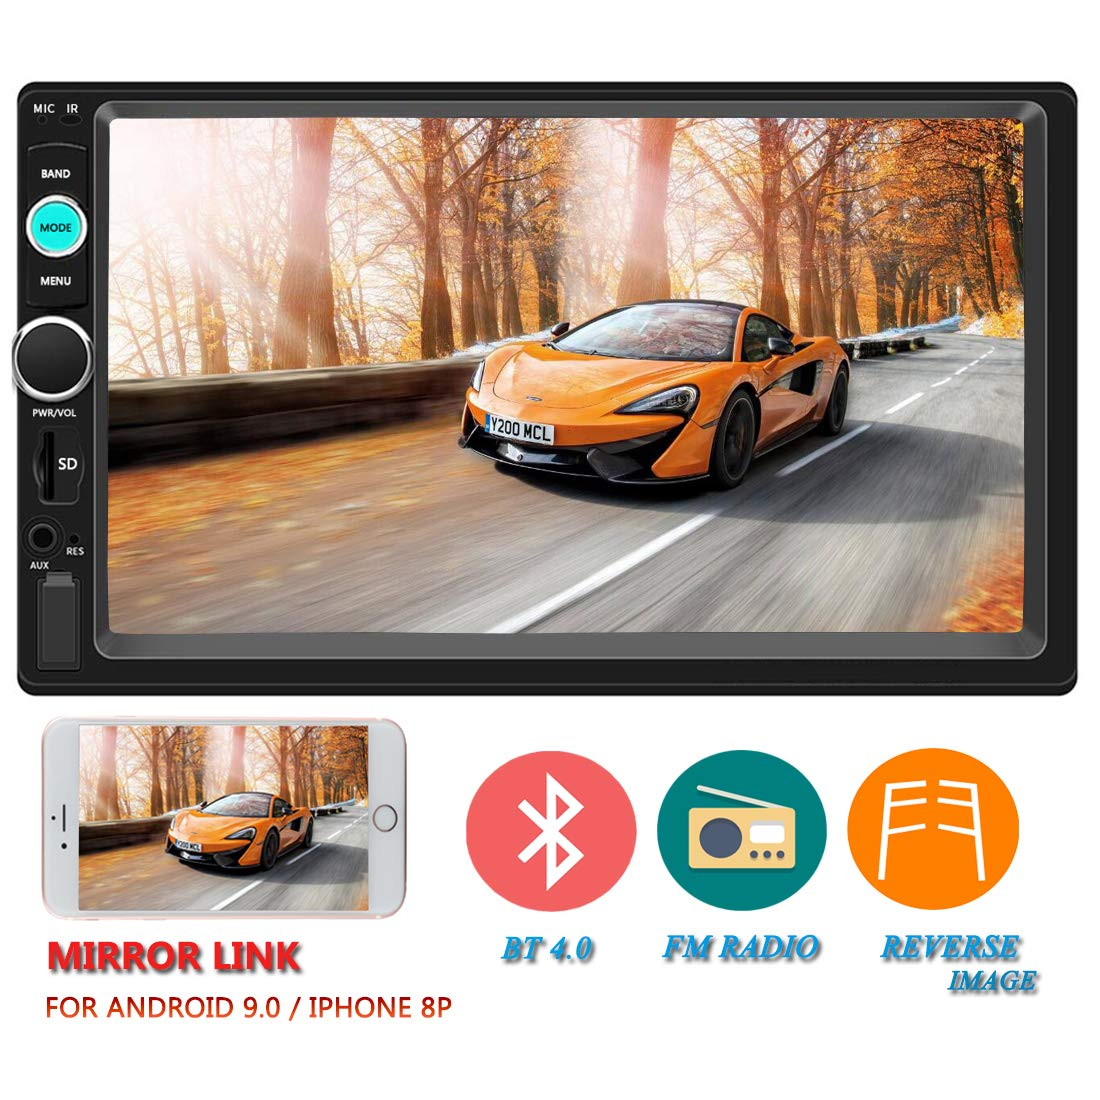 Upgraded Version Double Din Car Stereo 7 Inch Touch Screen in-Dash Head Unit MP5 Player USB FM Radio Car Audio Receiver Compatible with Bluetooth Support Backup Rear View Camera Mirror Link by IHOMKIT